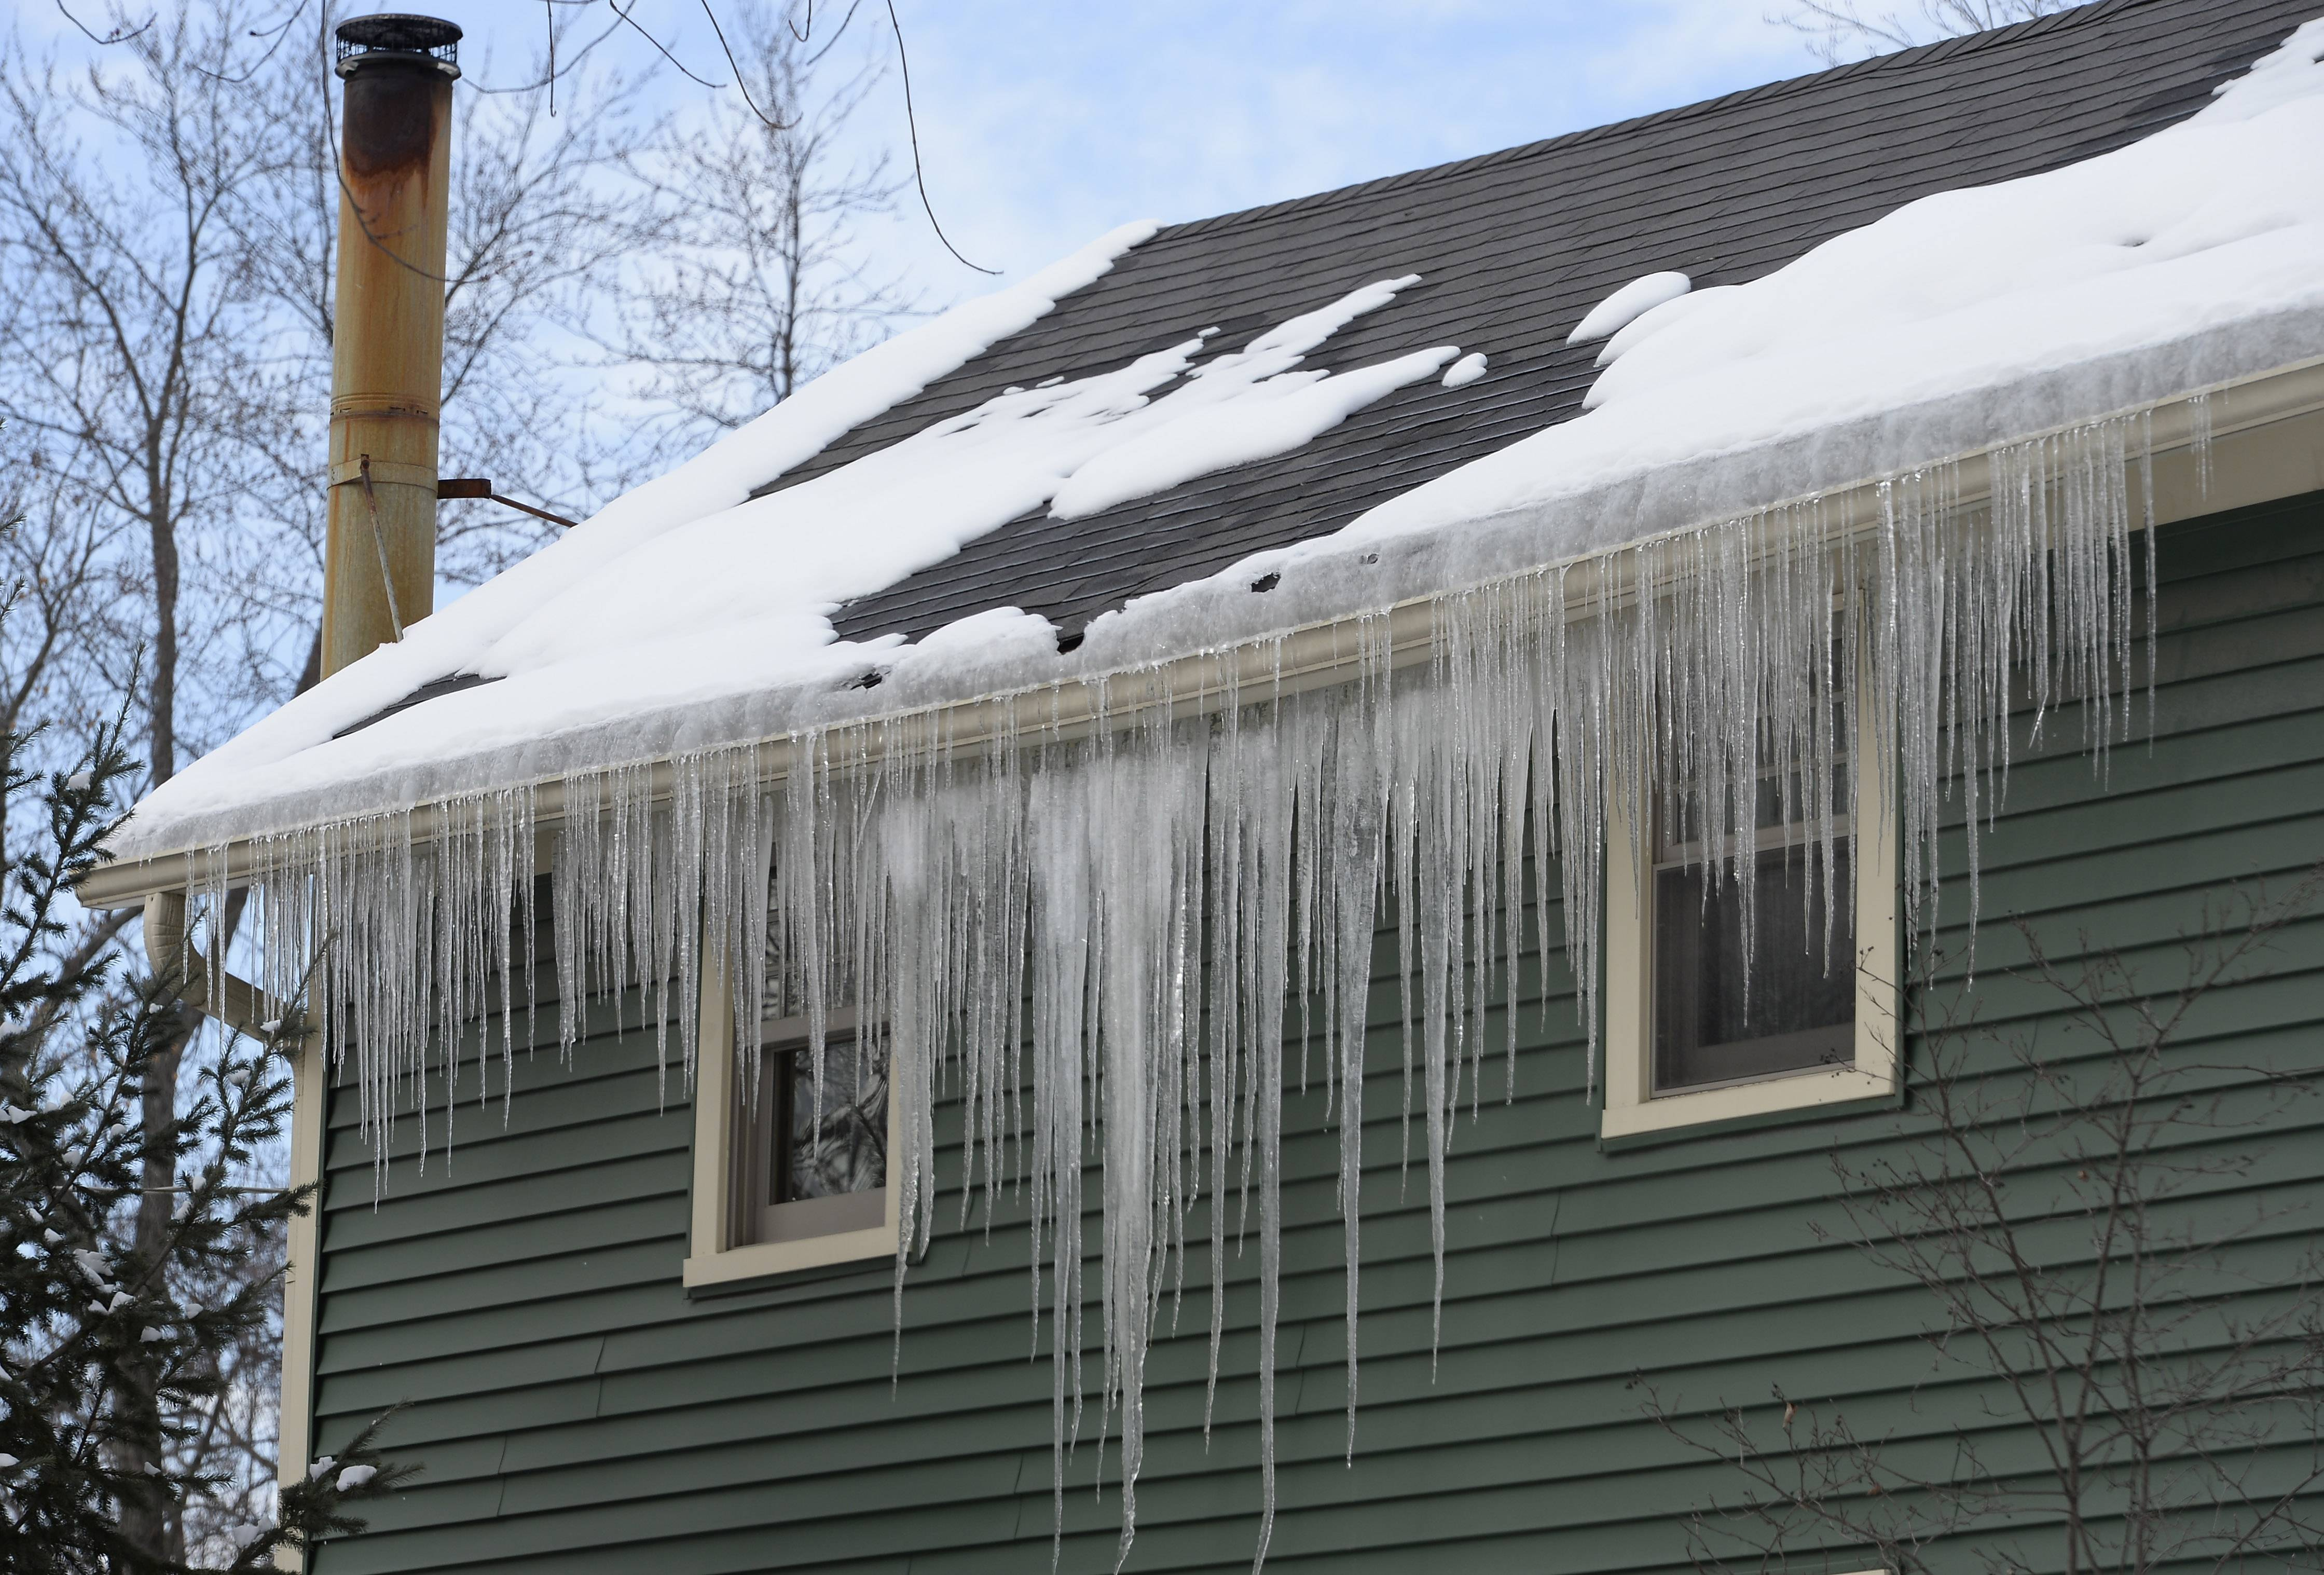 Icicles created by an ice dam last February hang from a house in Palatine. With the temperatures climbing in the next few days, ice dams could threaten many suburban homes' roofs.